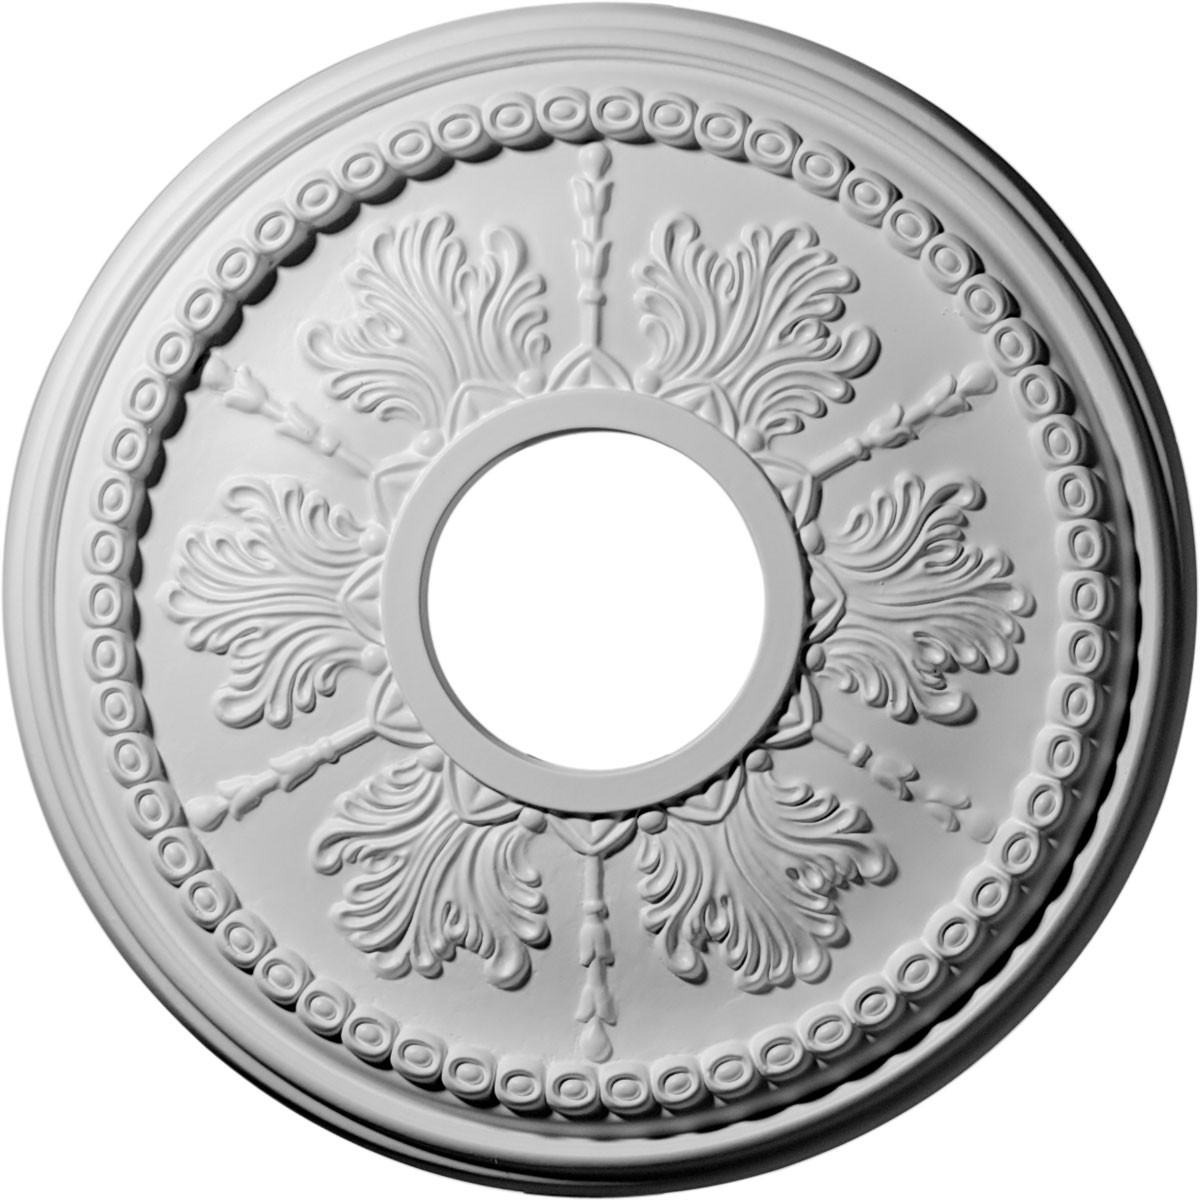 "EM-CM13TI - 13 7/8""OD x 3 3/4""ID x 1 1/4""P Tirana Ceiling Medallion (Fits Canopies up to 4 3/4"")"